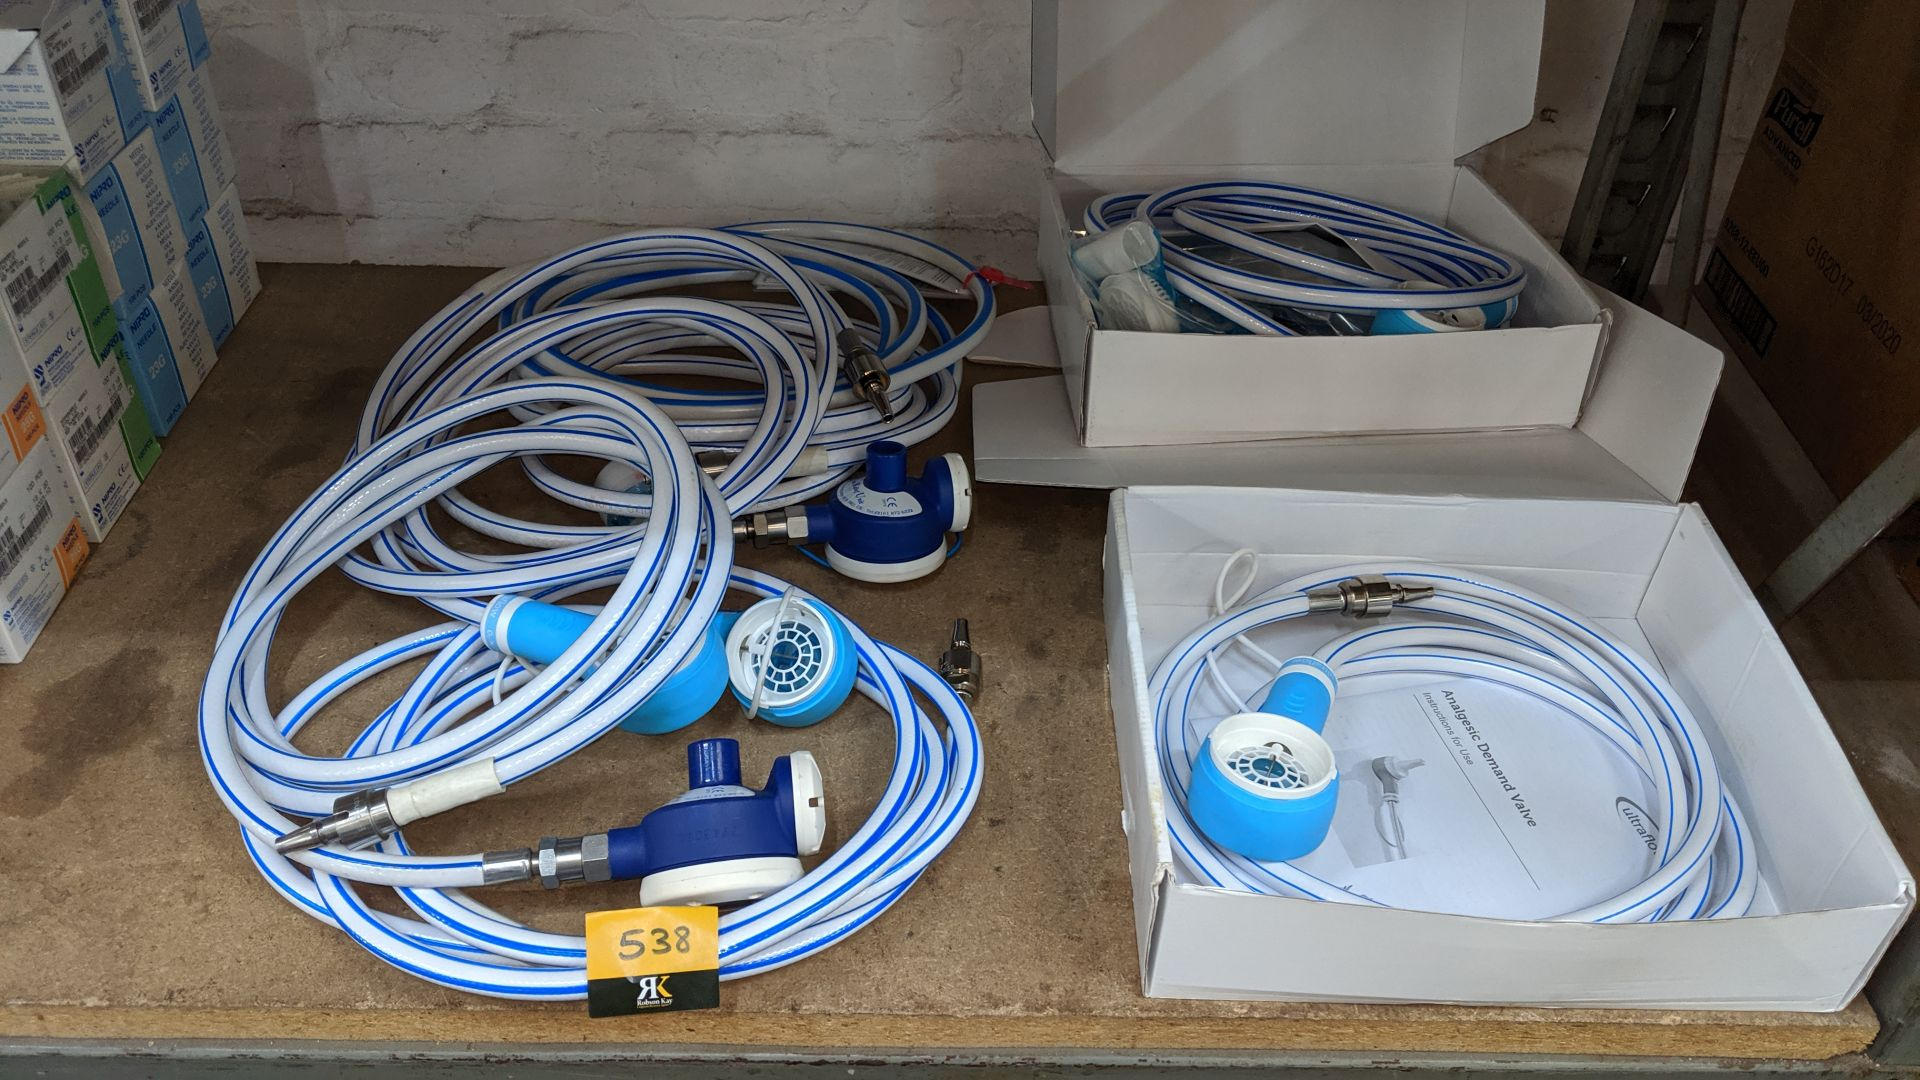 Lot 538 - 7 off assorted boxed and unboxed Analgesic Demand Valves. This is one of a large number of lots